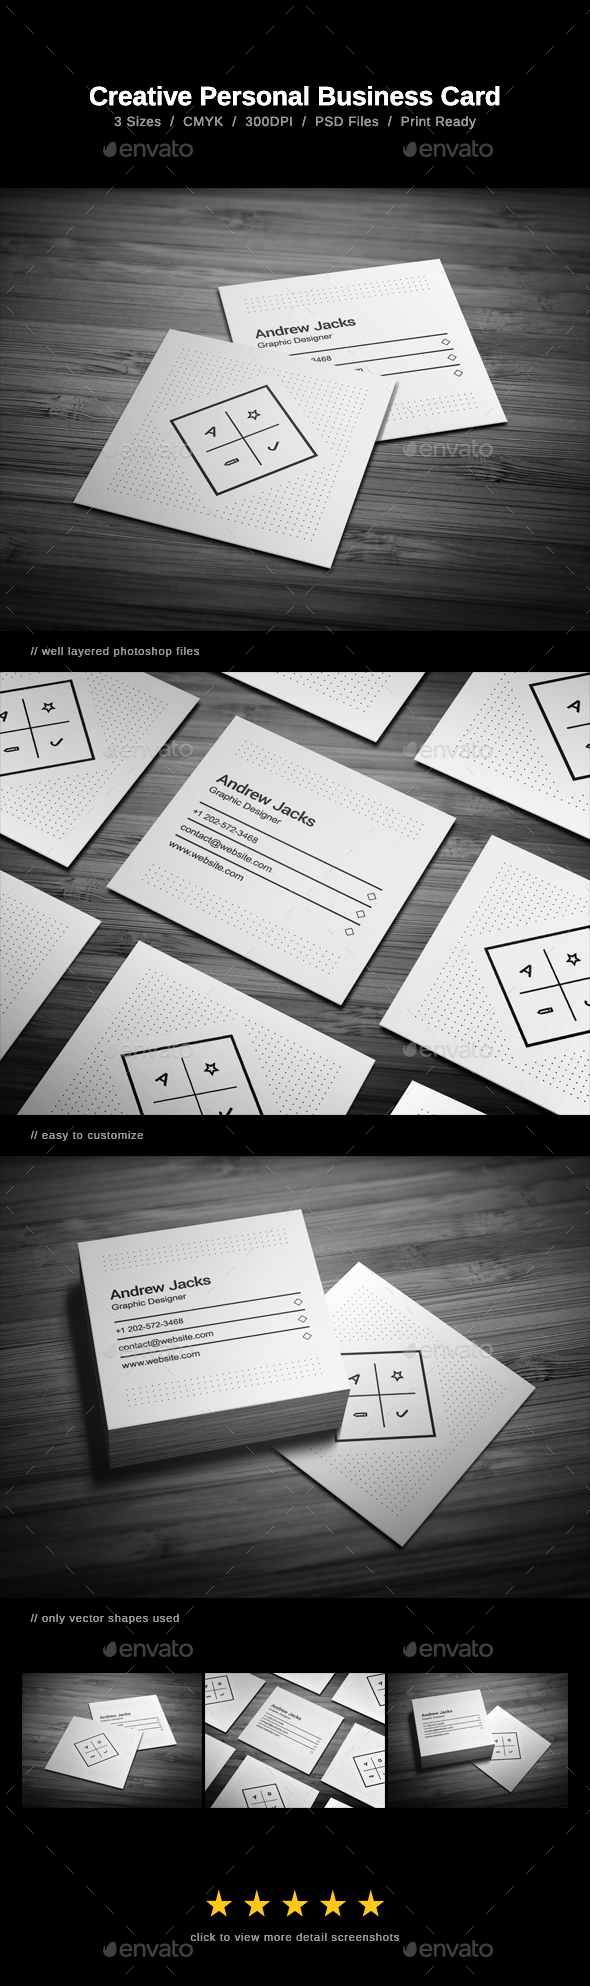 Creative Personal Business Card - Business Cards Print Templates